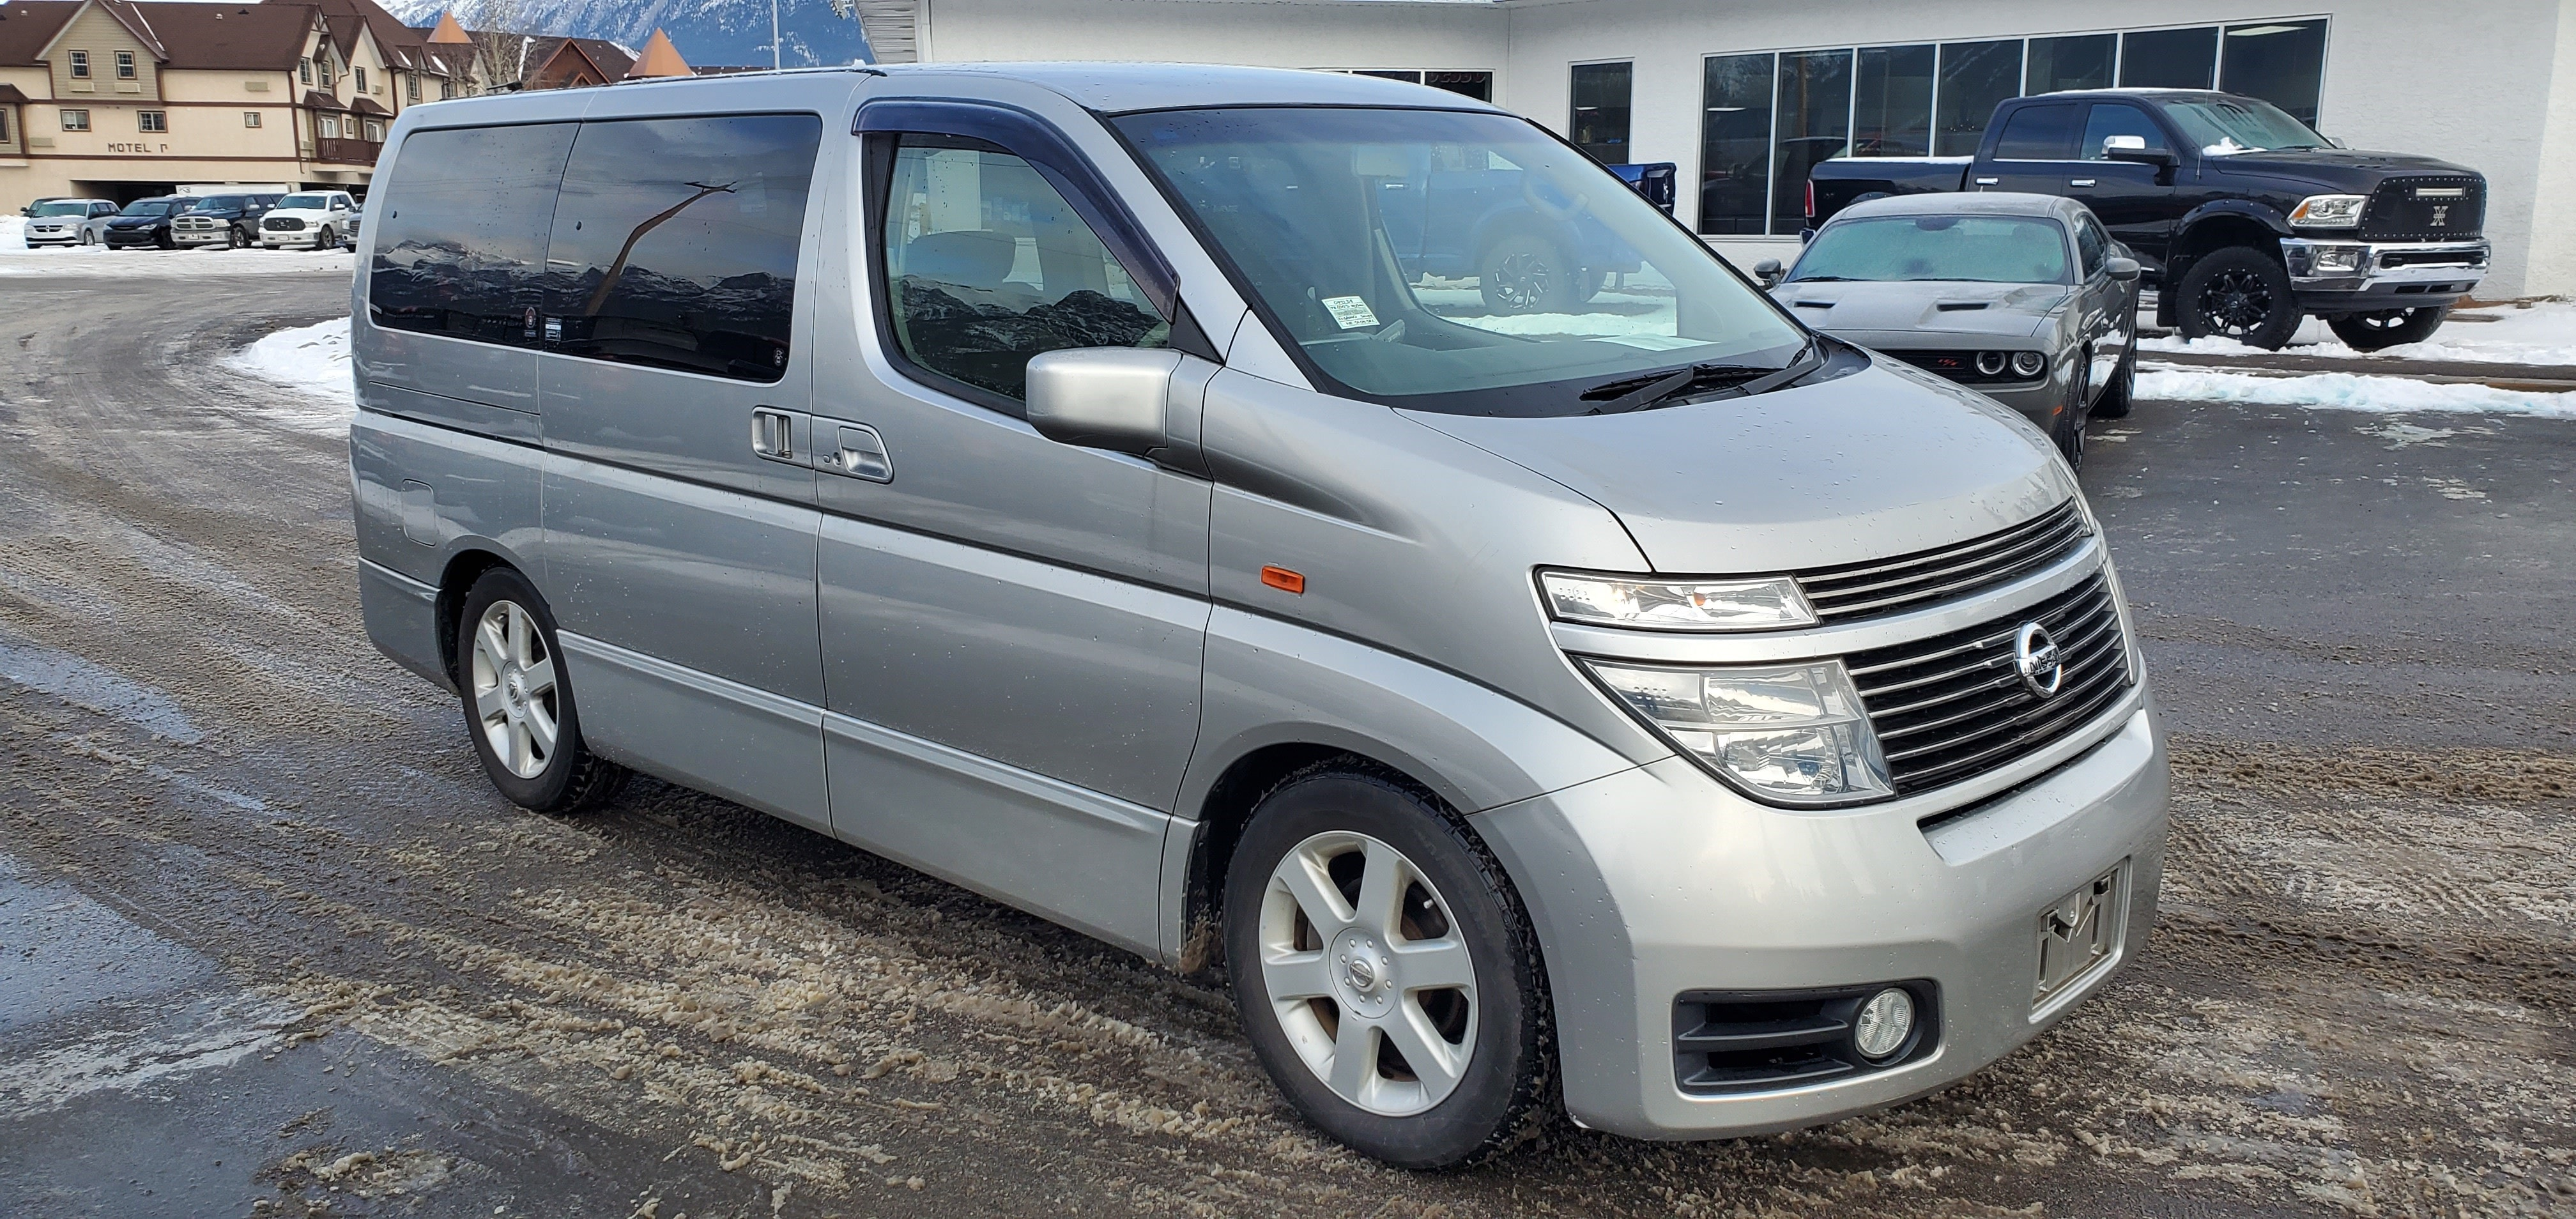 2003 Nissan Elgrand 4wd 8 Passenger Leather Split Sliding Seats